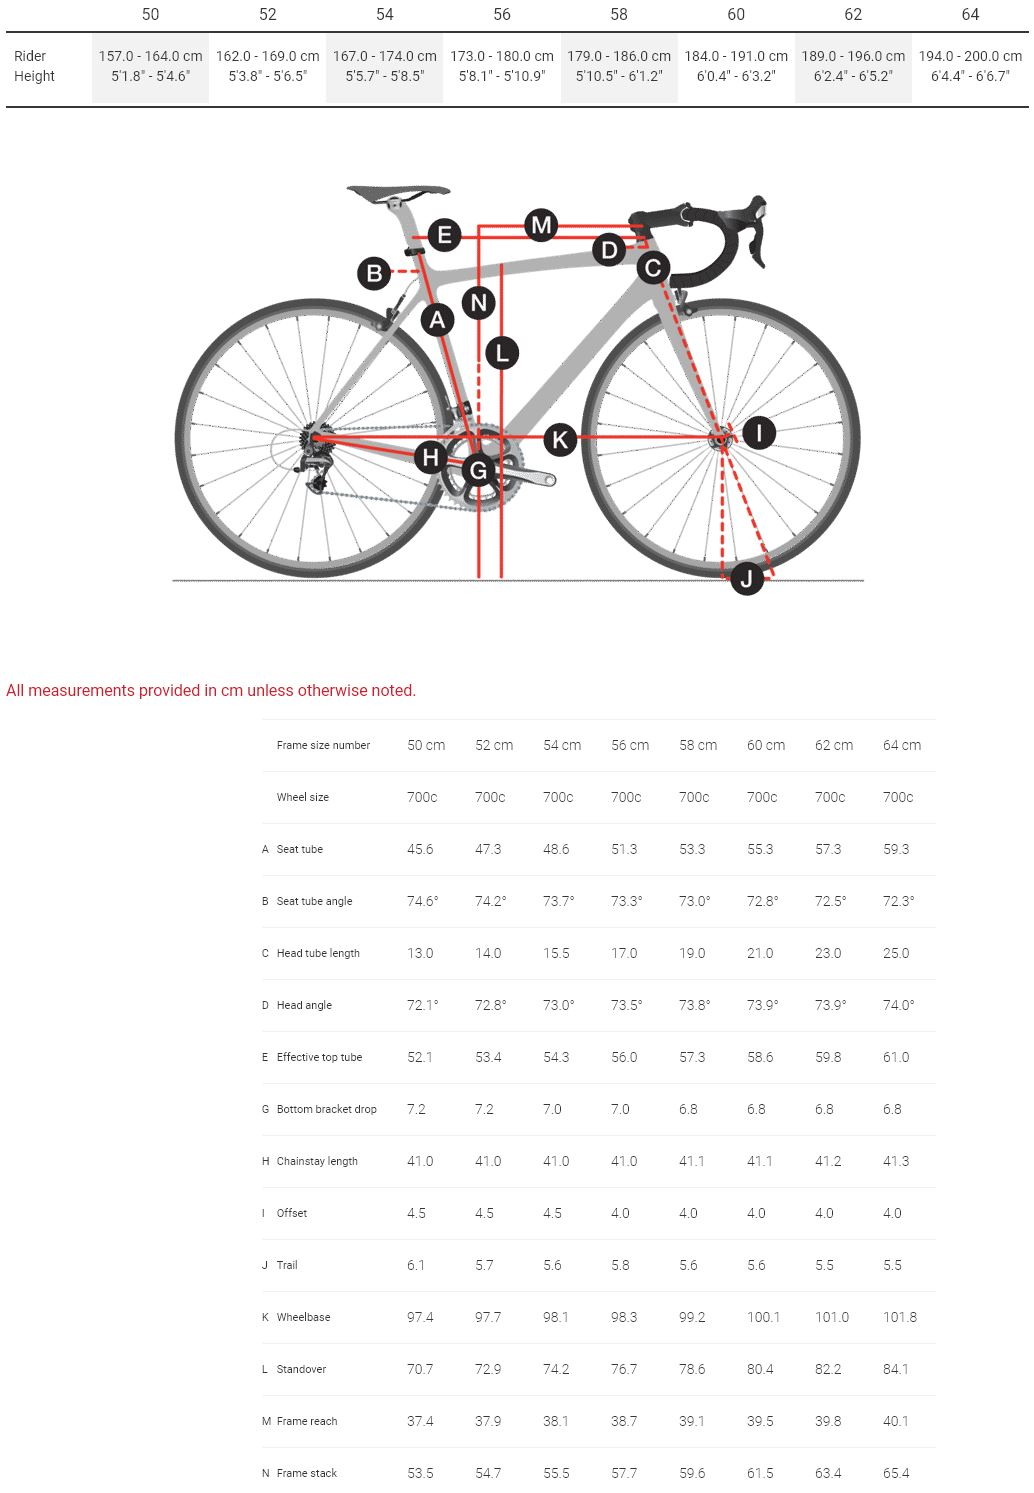 Trek Emonda Geometry Chart